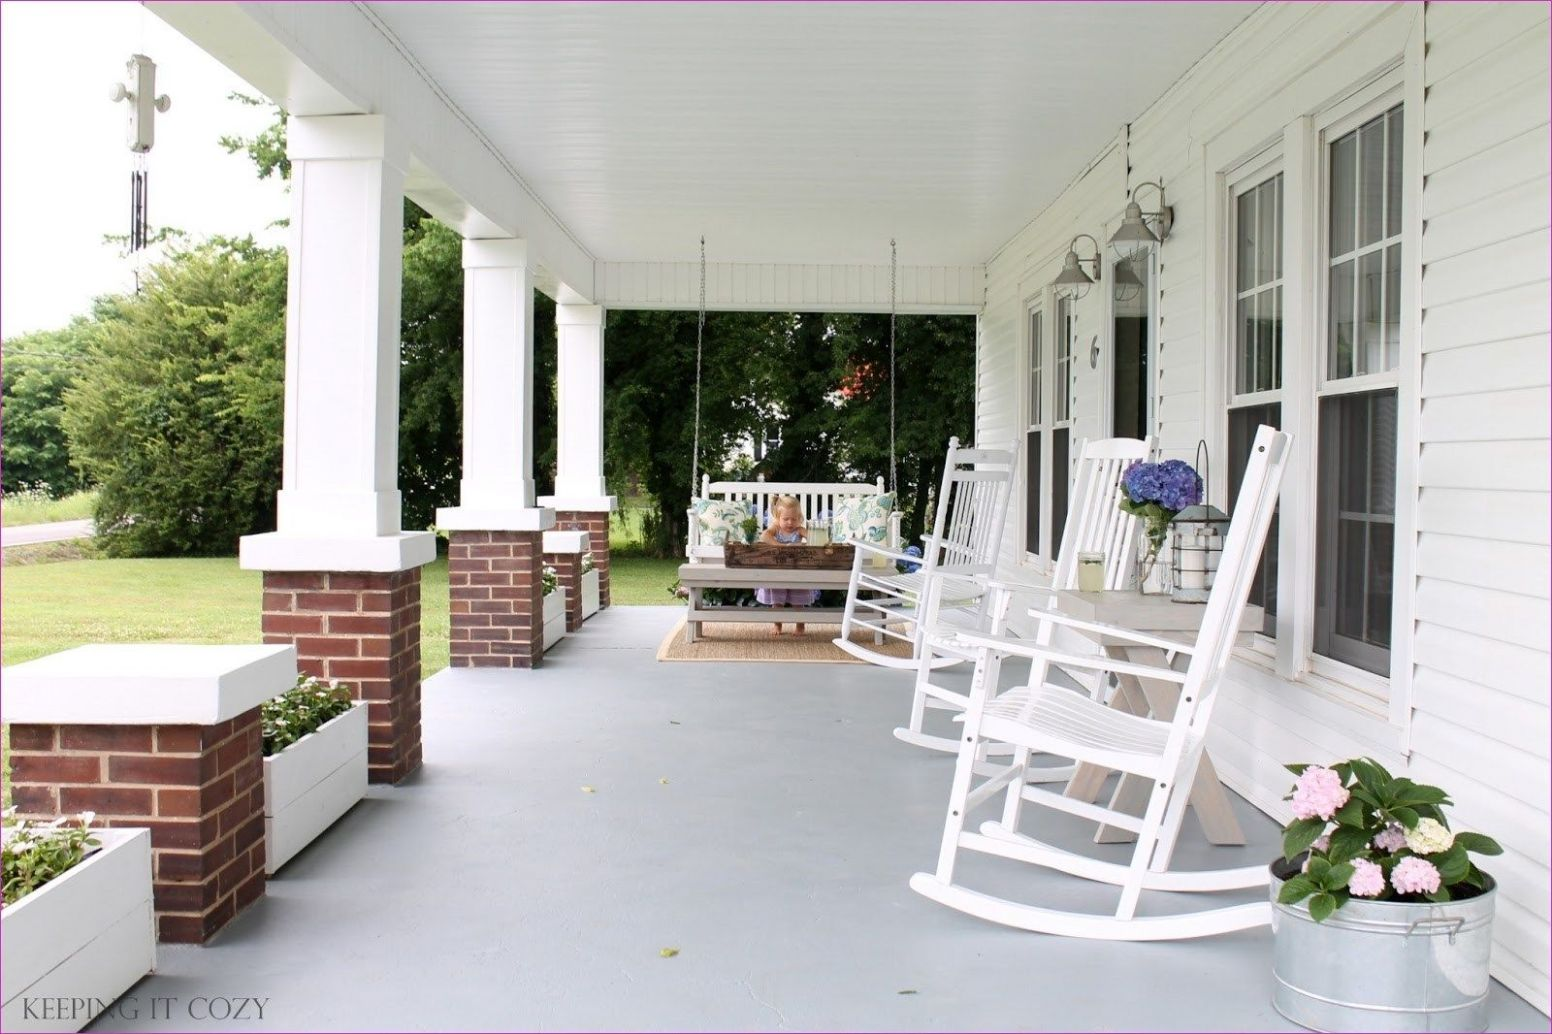 8 Awesome Brick Front Porch Decor Ideas   Front porch decorating ..